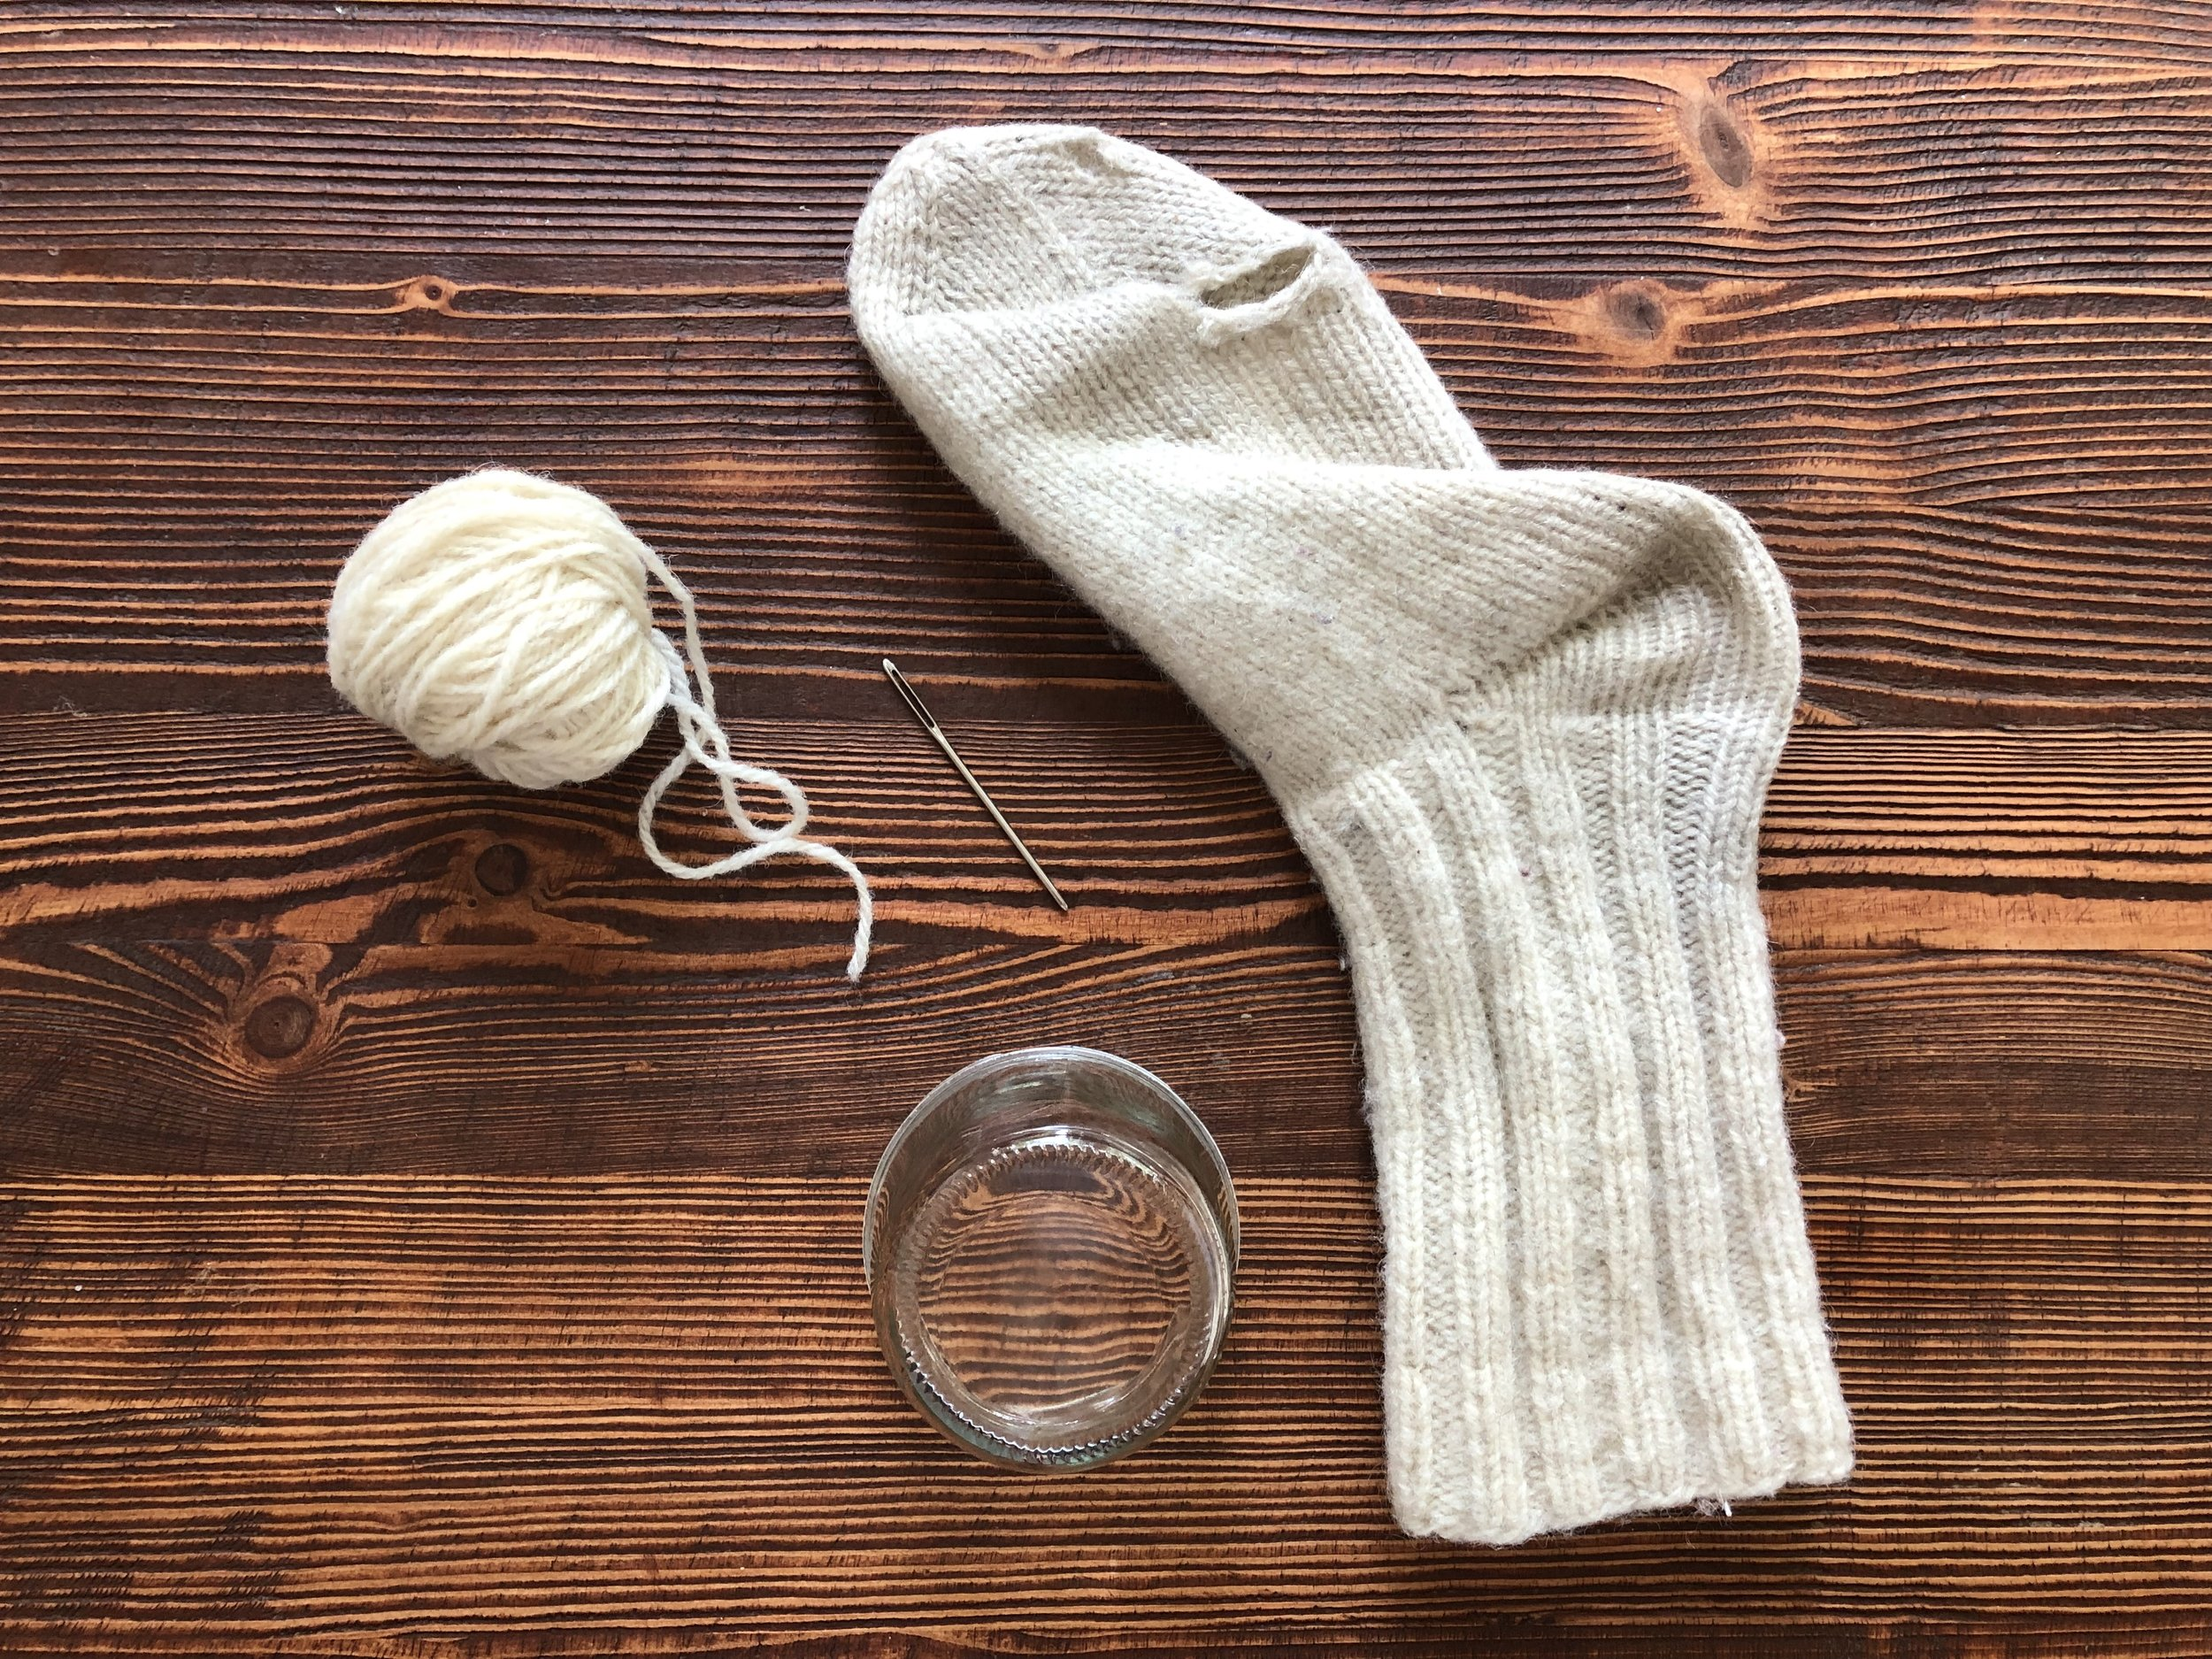 supplies you will need to mend your socks